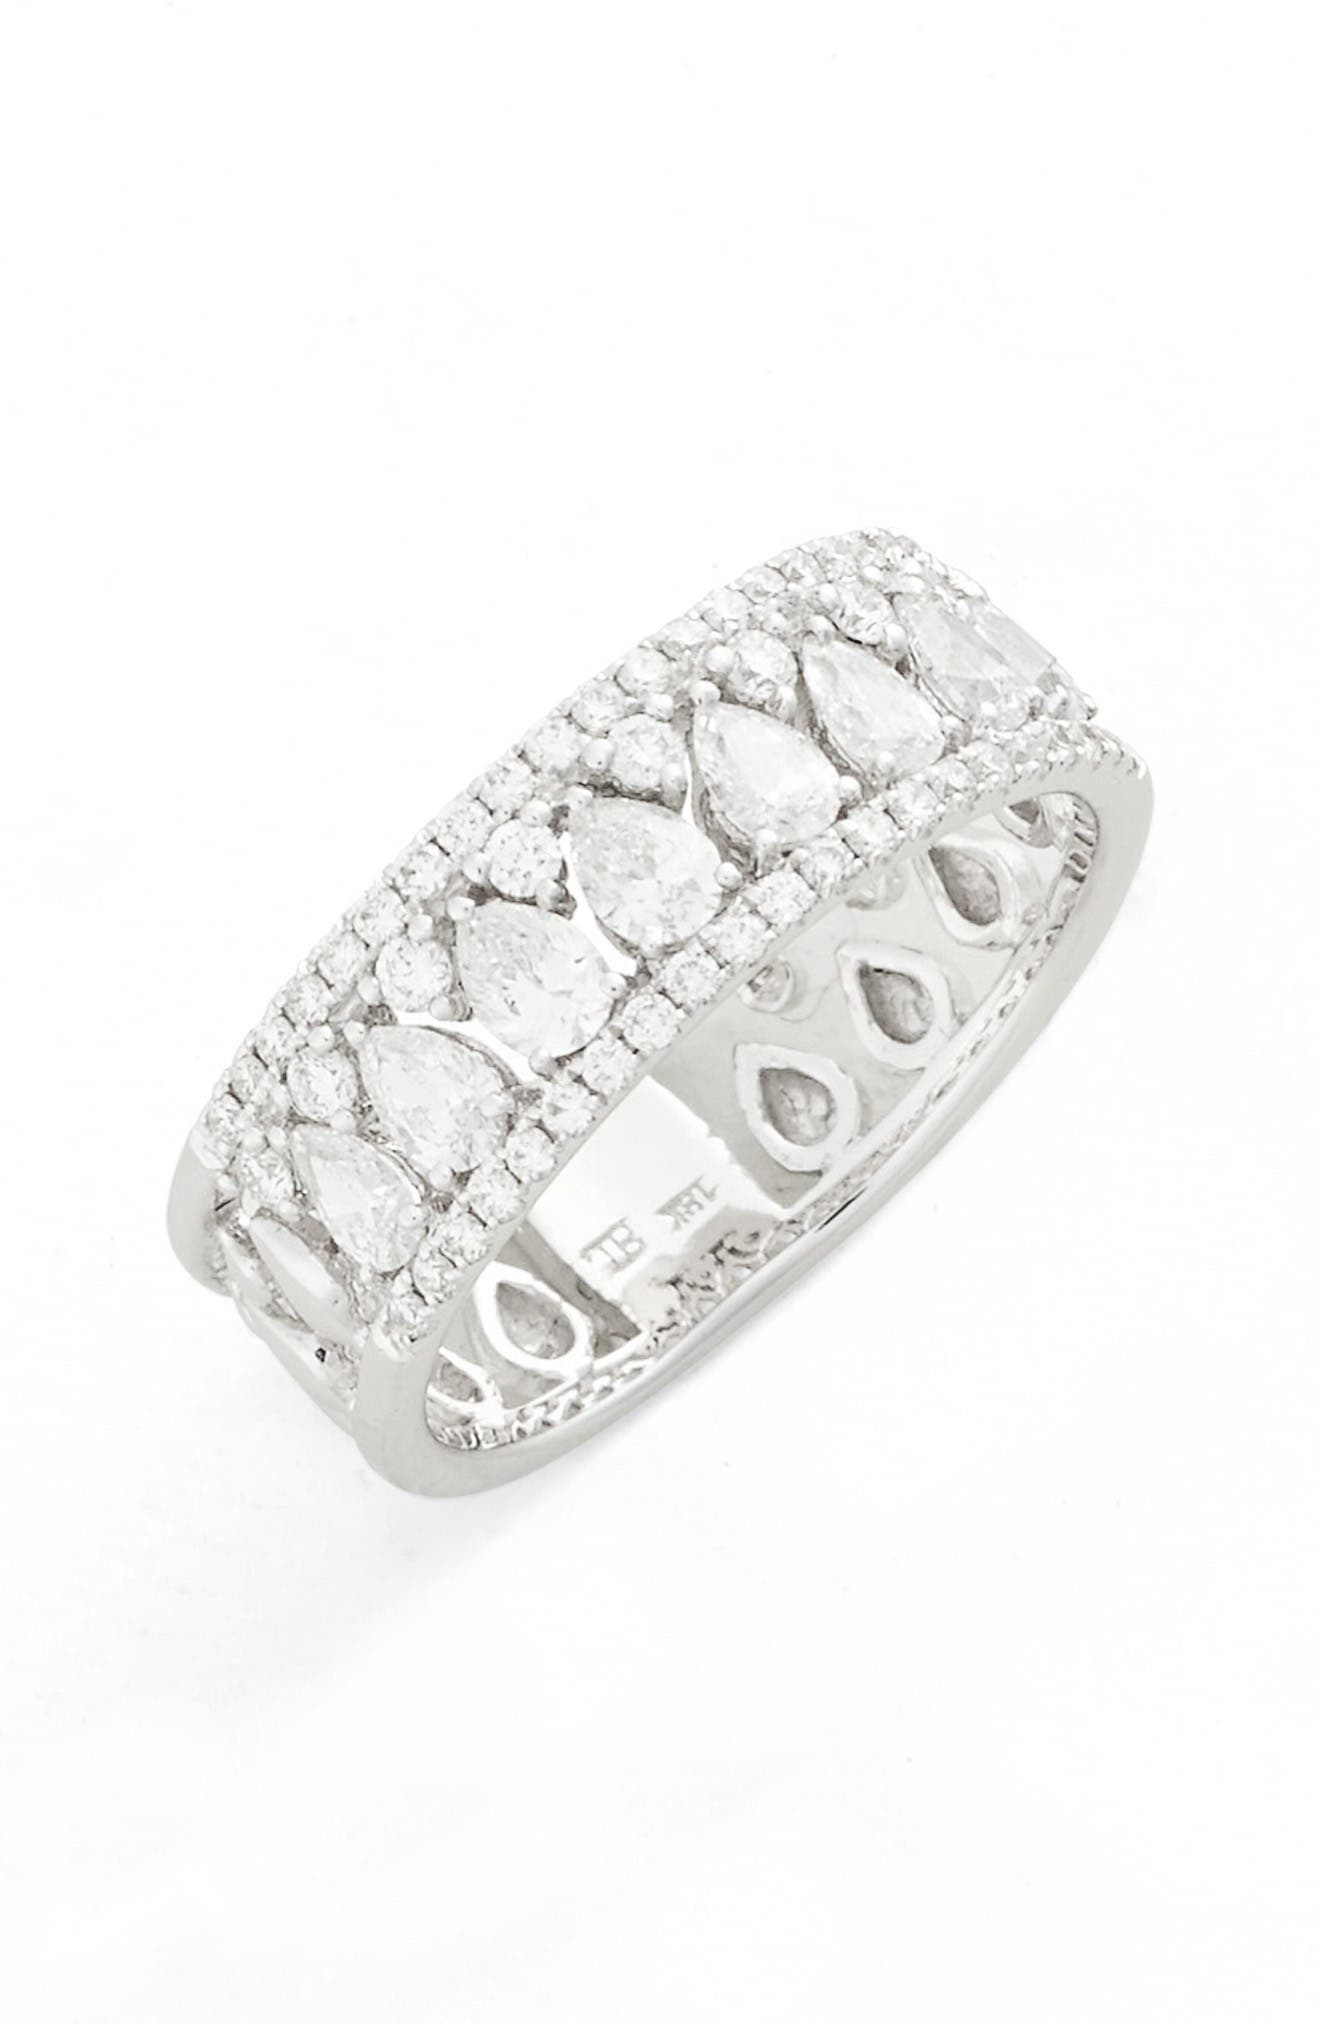 Alternate Image 1 Selected - Bony Levy Liora Diamond Mixed Cut Band Ring (Nordstrom Exclusive)